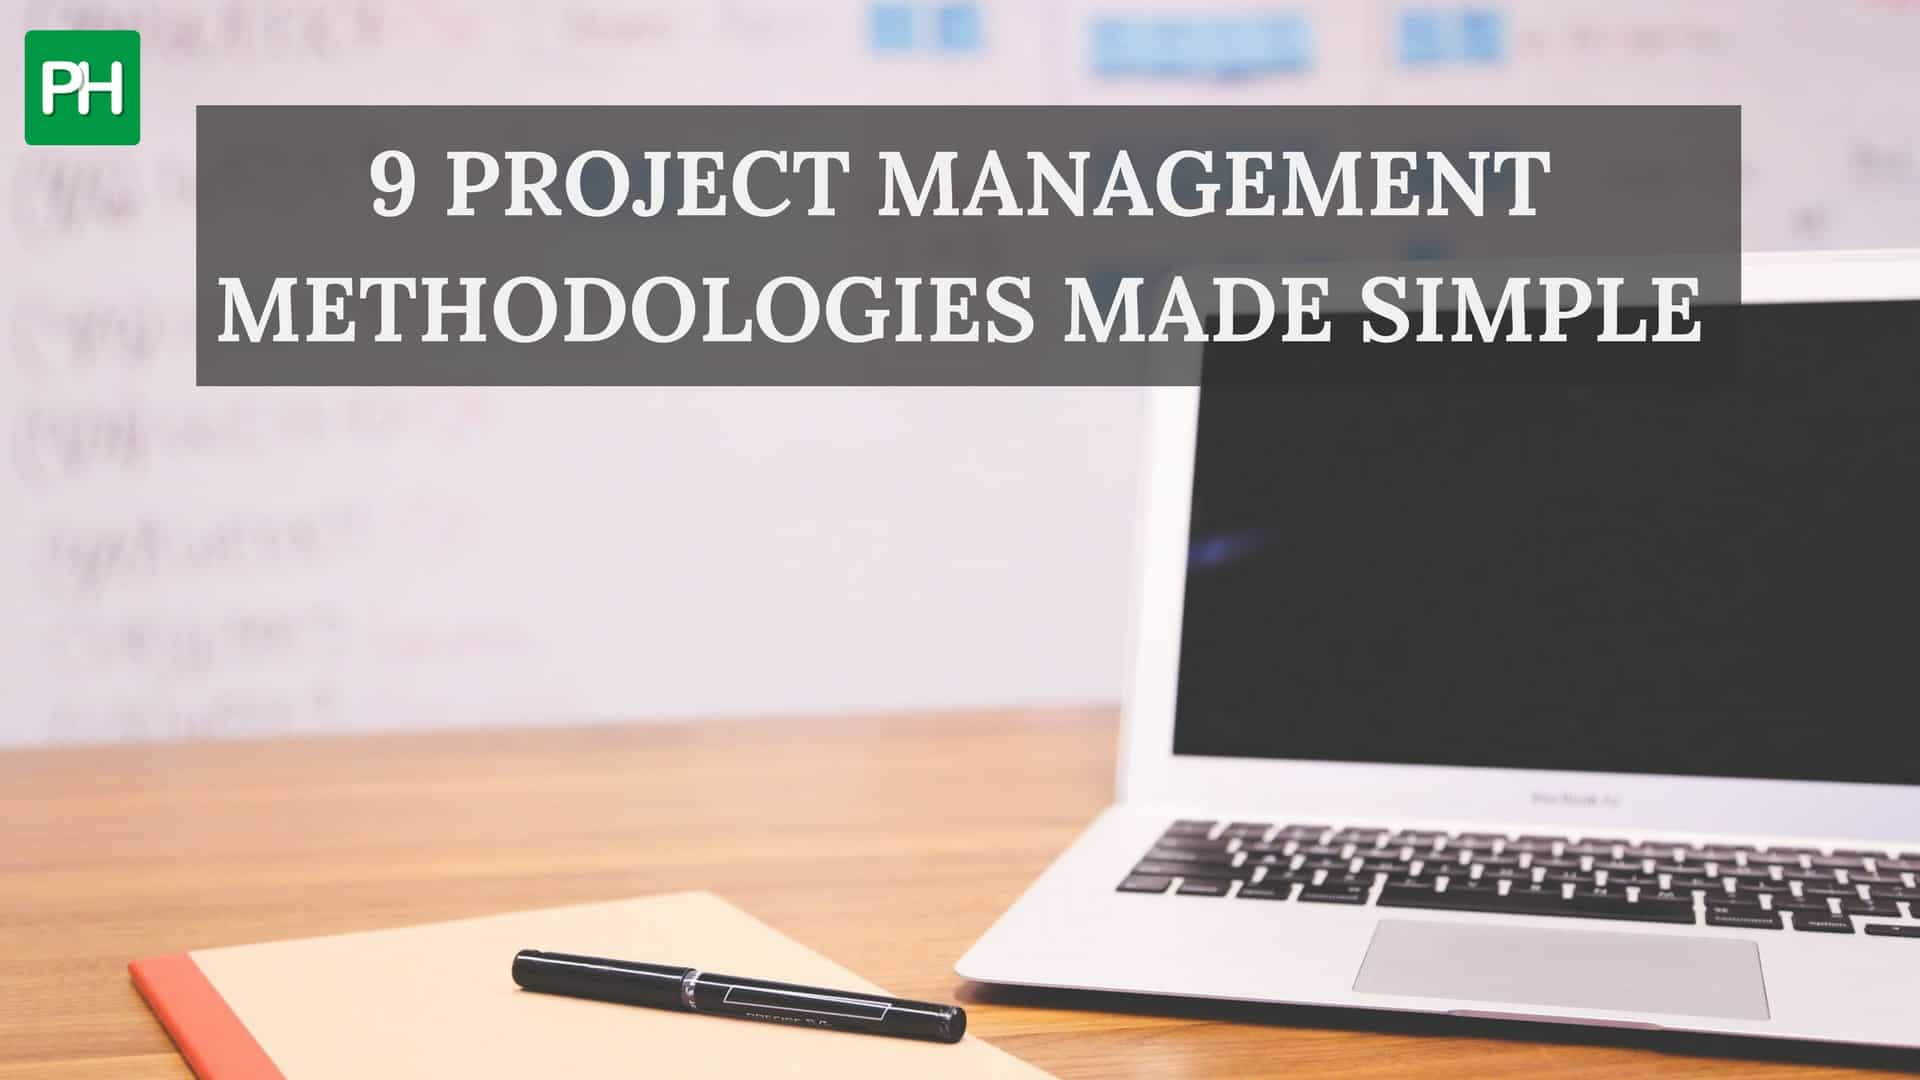 9 Project Management Methodologies Made Simple